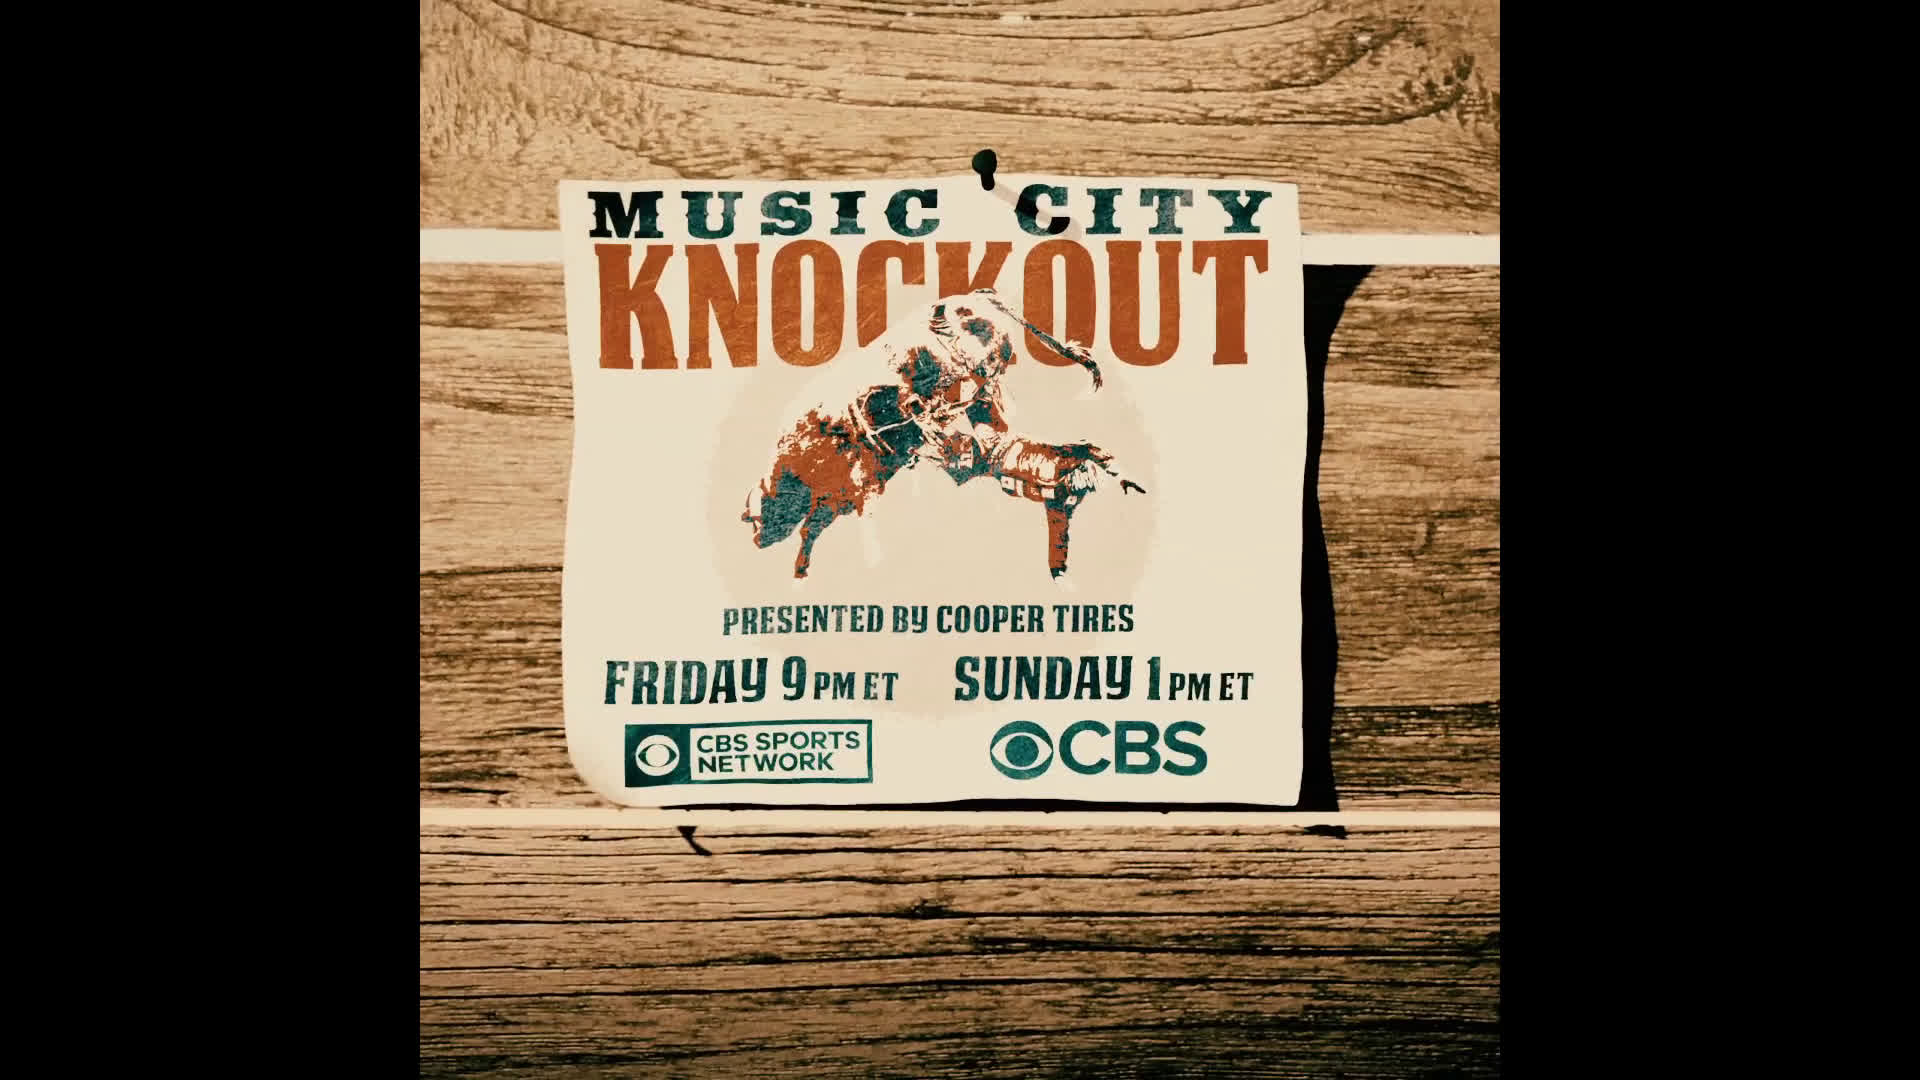 Catch the Music City Knockout on CBS